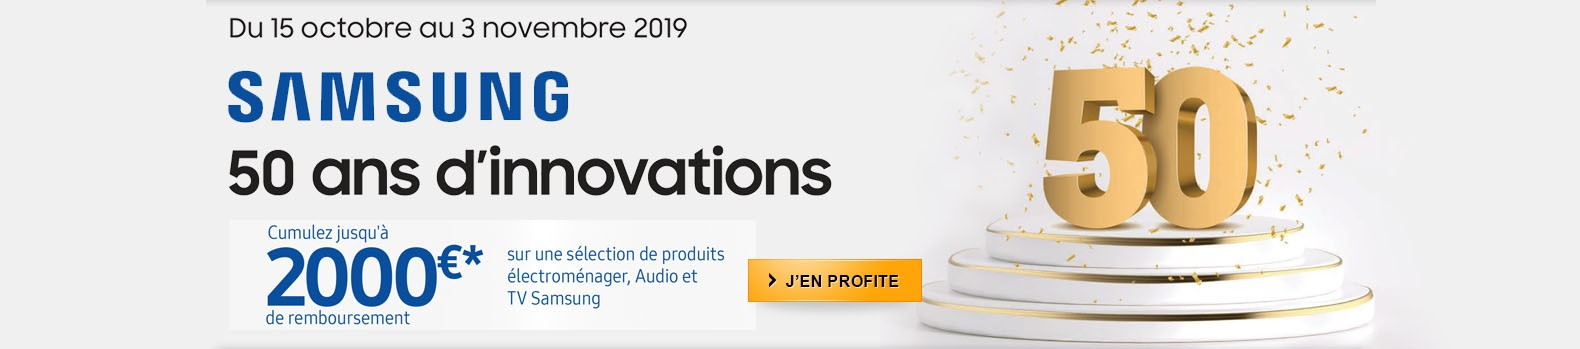 Offre Anniversaire Samsung 50 ans d'innovations